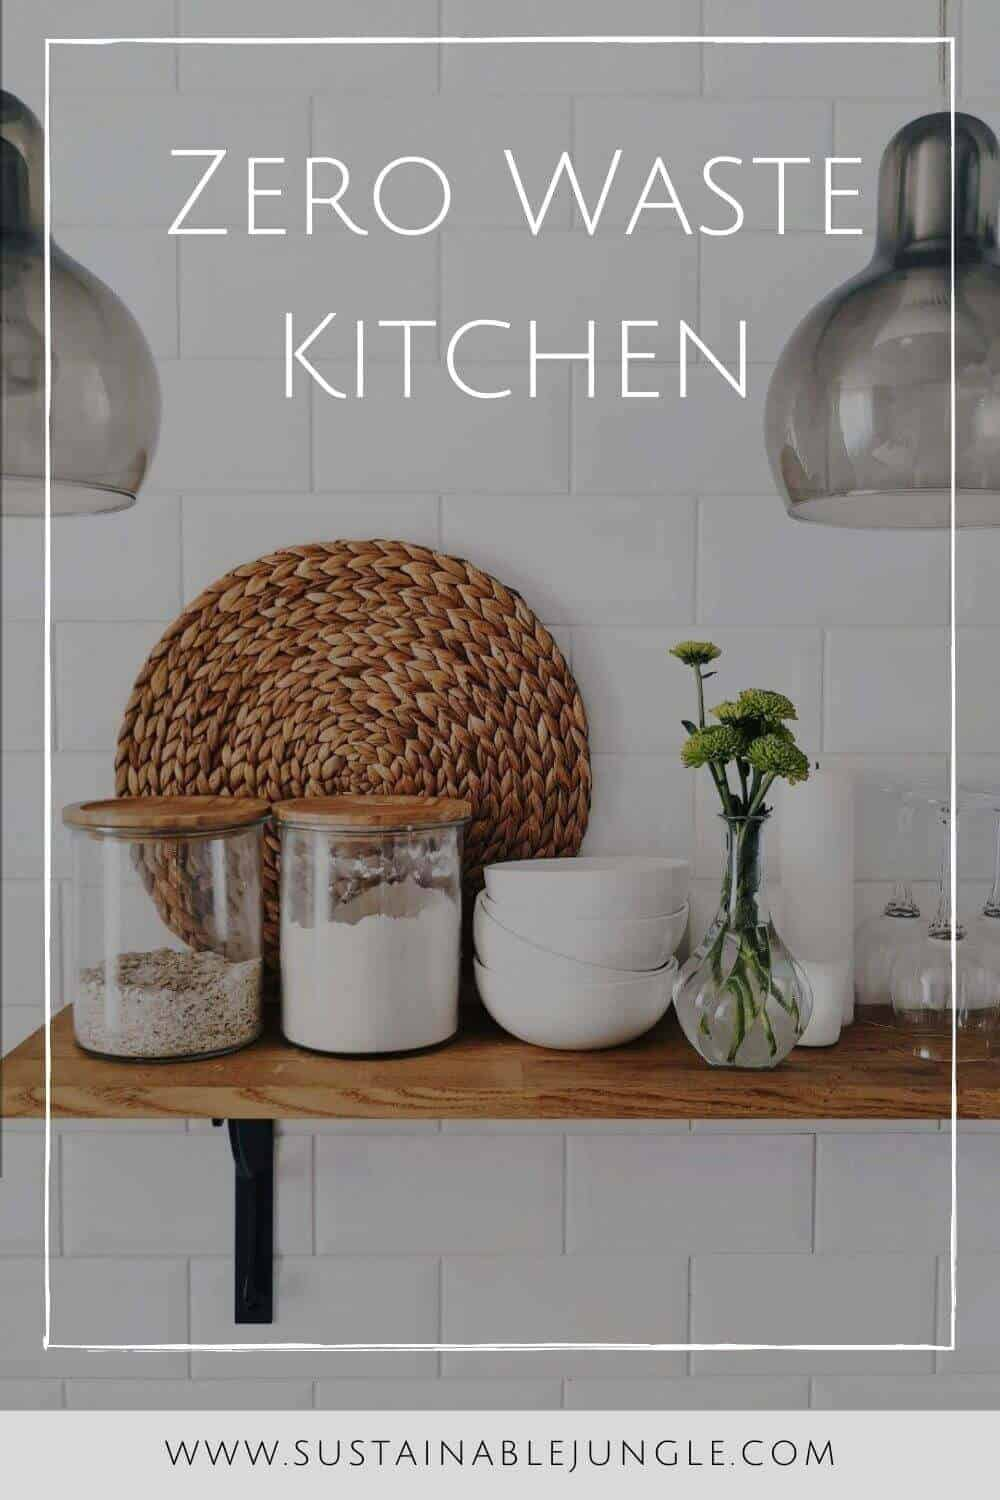 Let's get cooking and plate up 10 delicious zero waste kitchen swops to make your kitchen a less wasteful space. Photo by Uliana Kopanytsia on Unsplash #zerowastekitchen #sustainablejungle